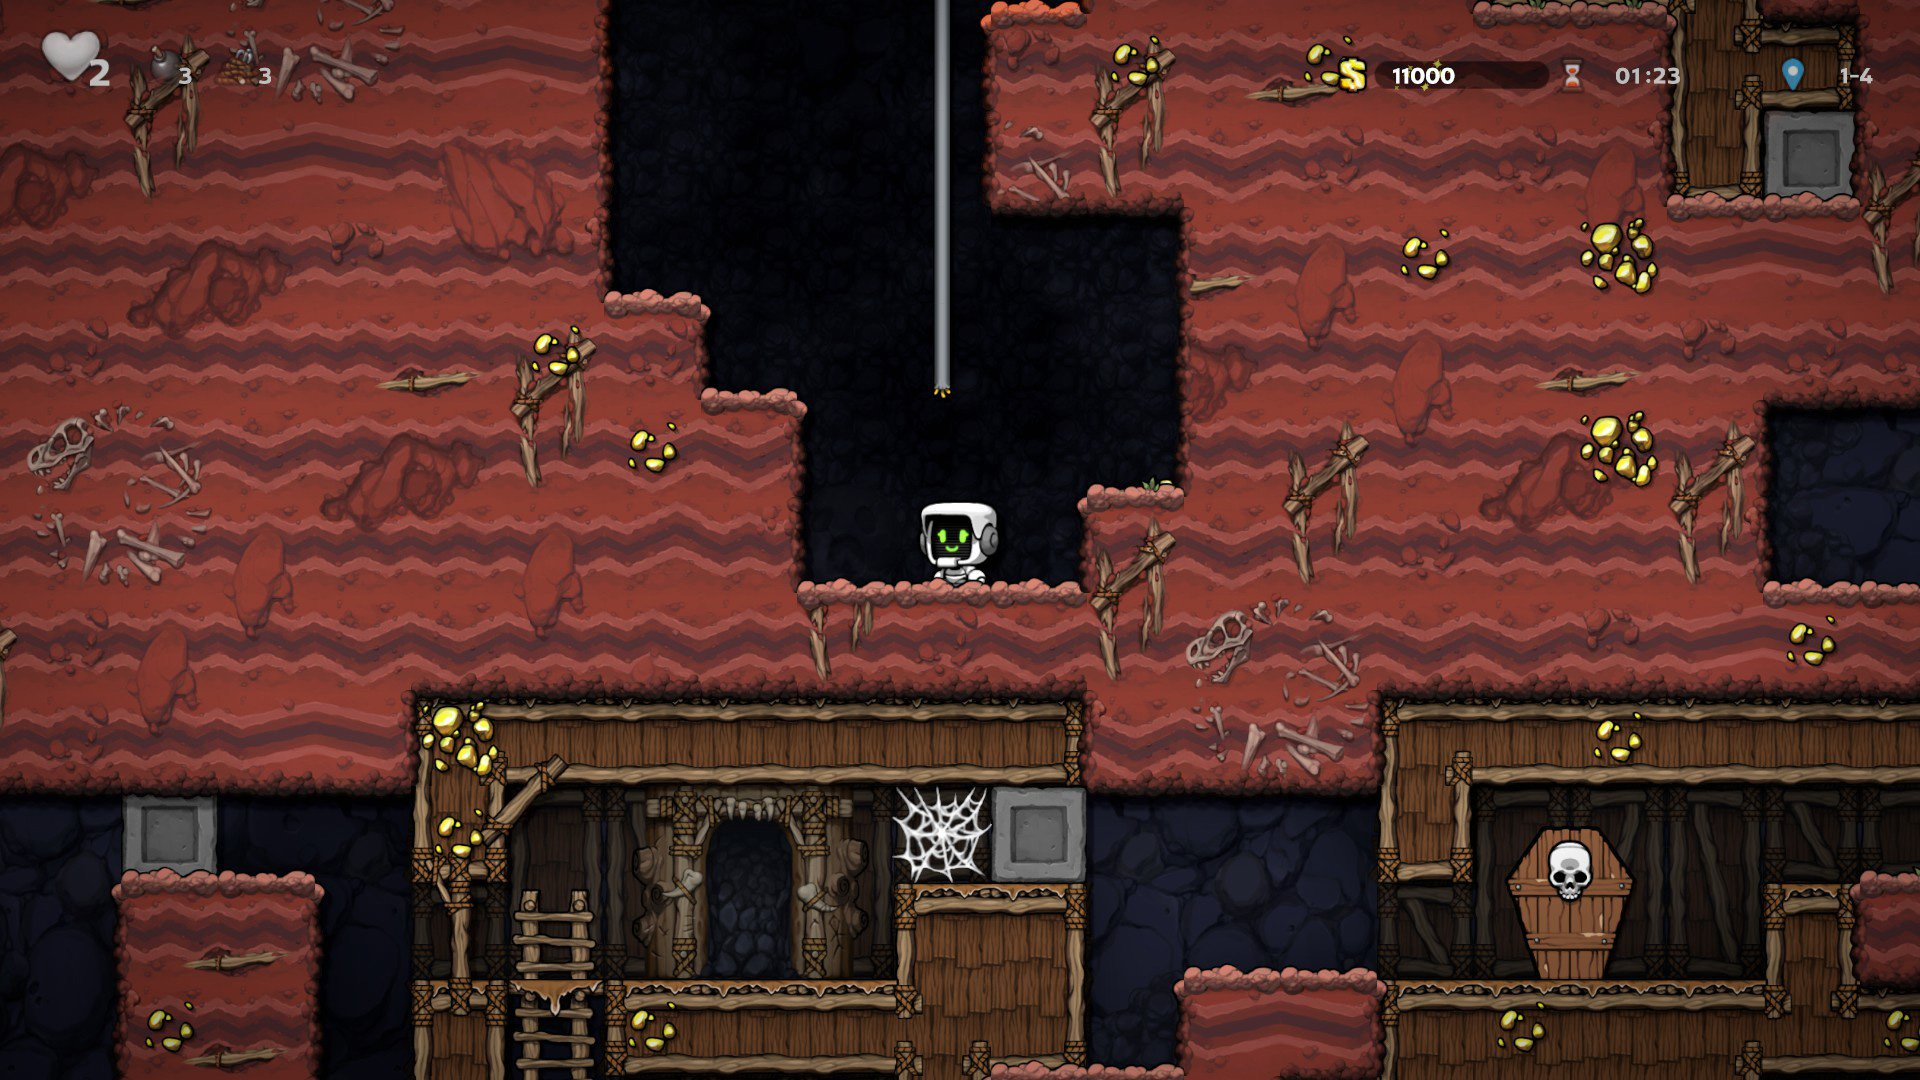 How to enter the secret shop on level 1-4